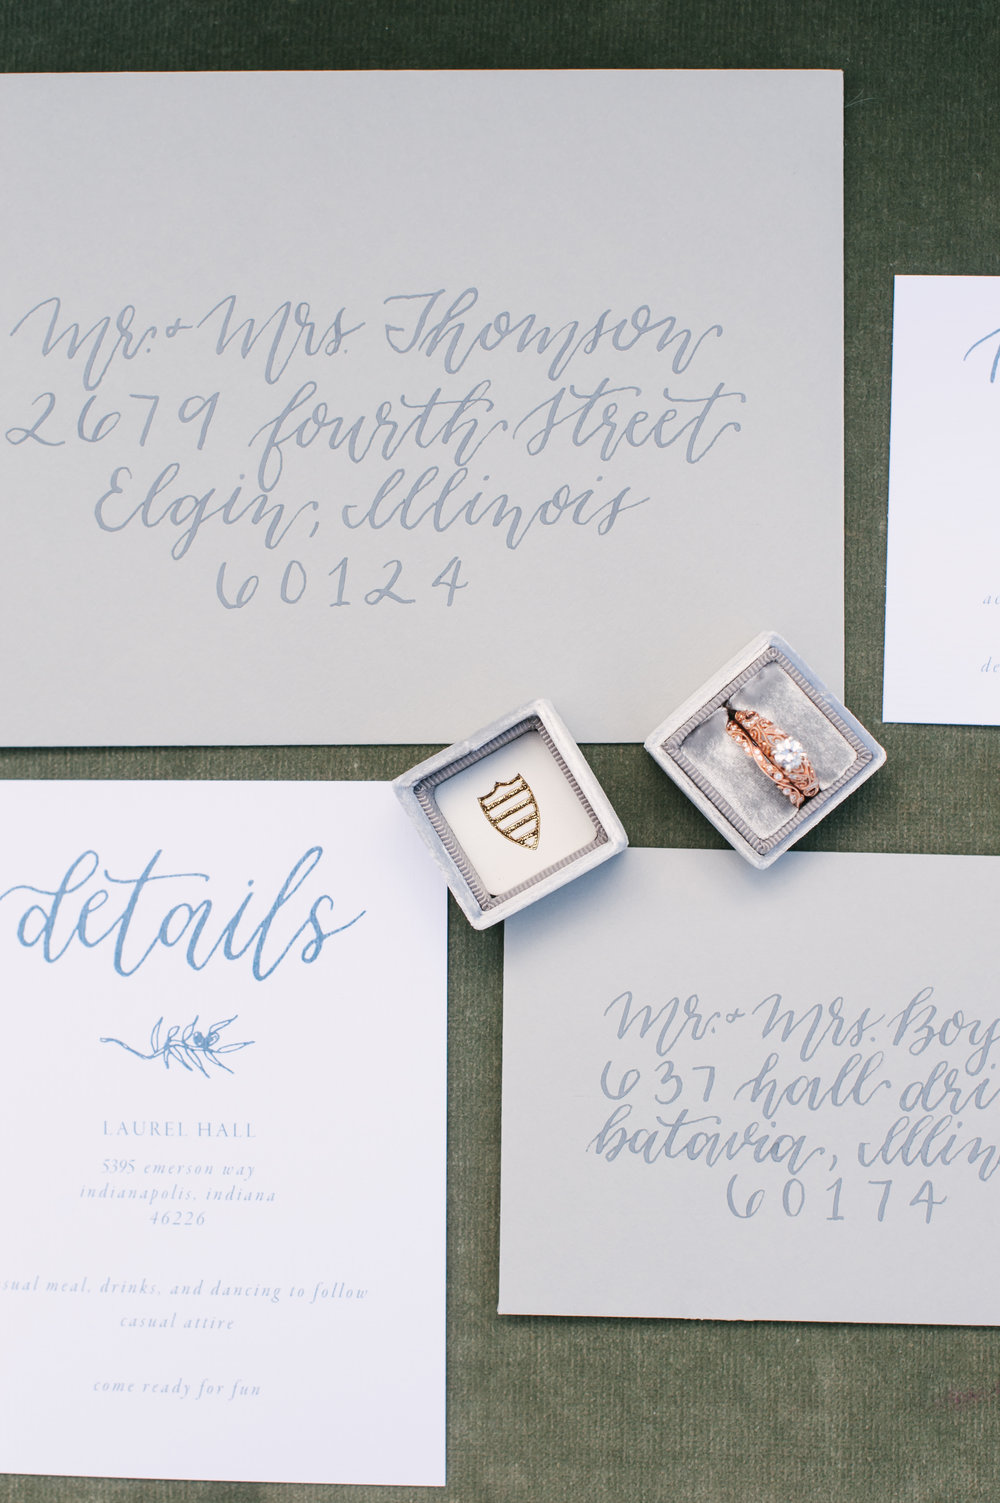 Invitations - Custom invitations are the perfect way to make your event stand out. Elegant & whimsical, an invitation suite that perfectly matches the feel of your wedding (or other special day) will take your event and add a new level of luxury.